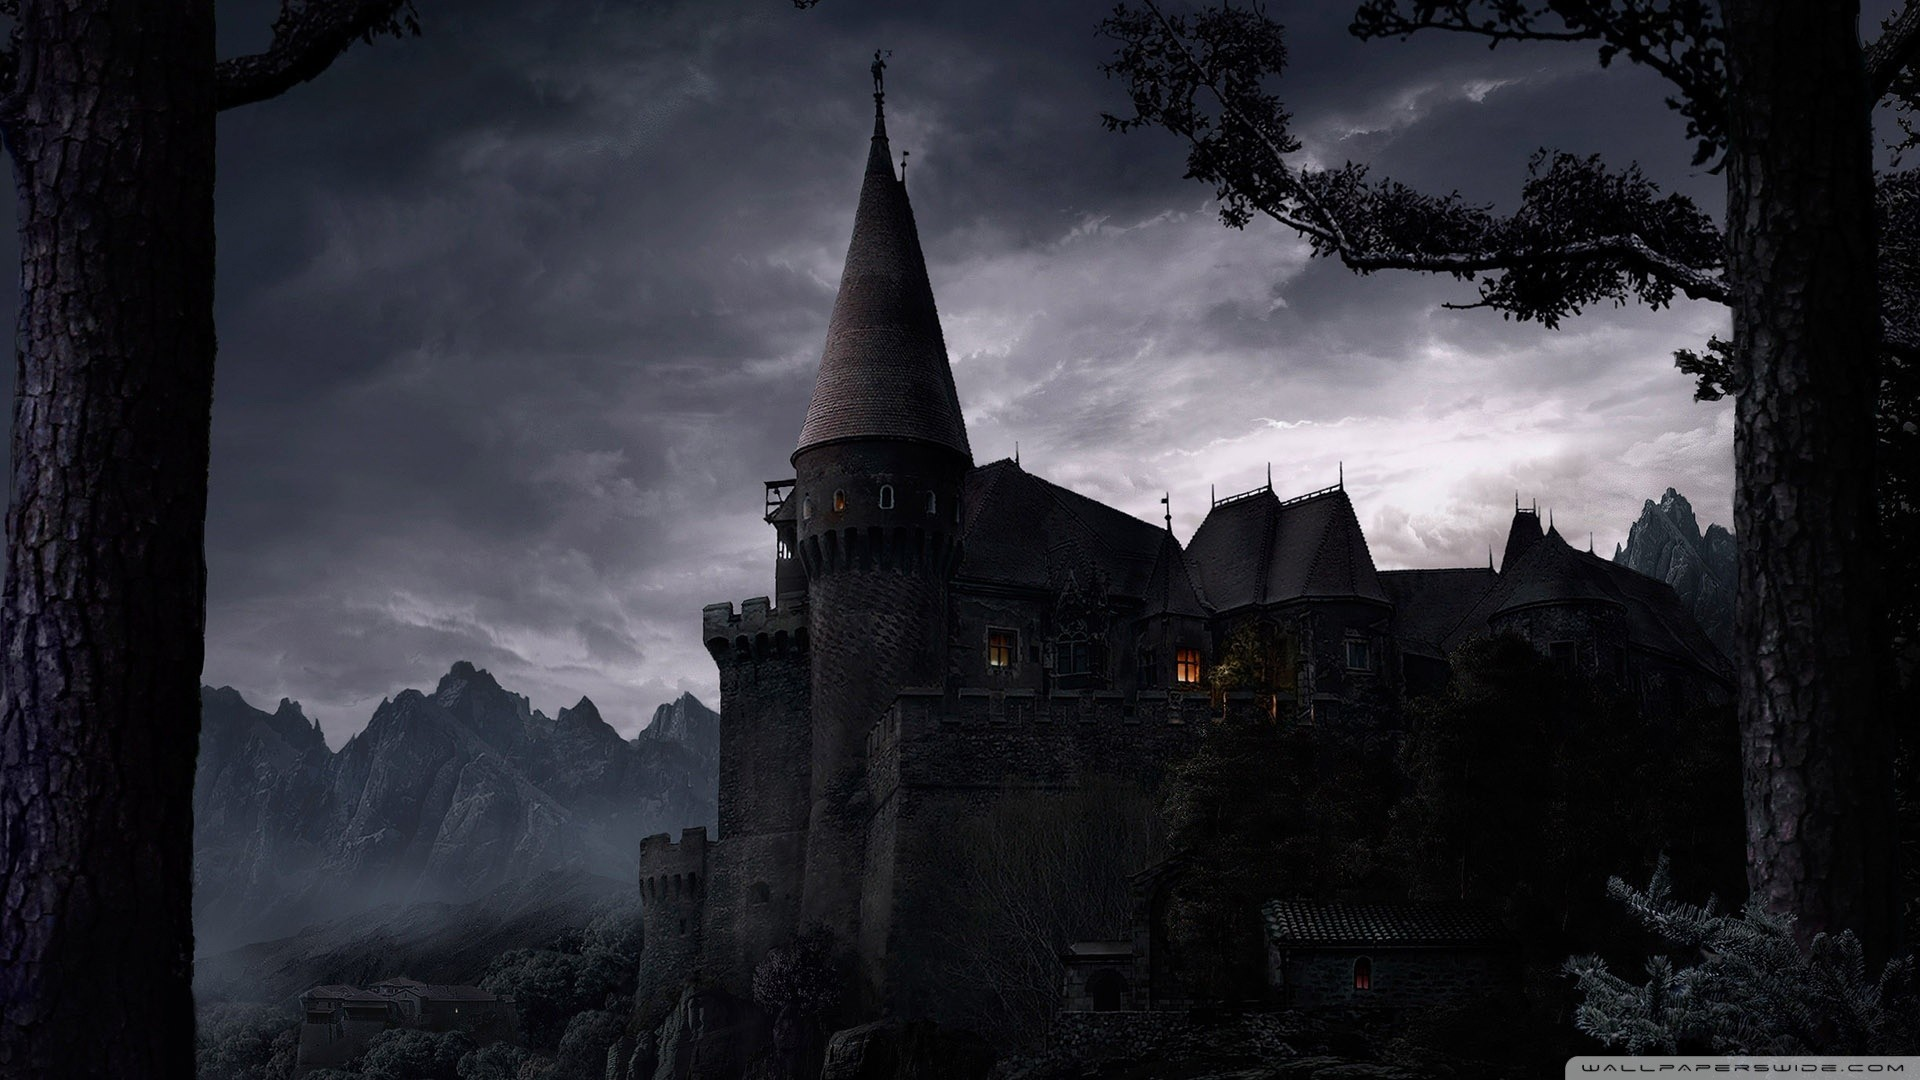 Res: 1920x1080, A dark castle